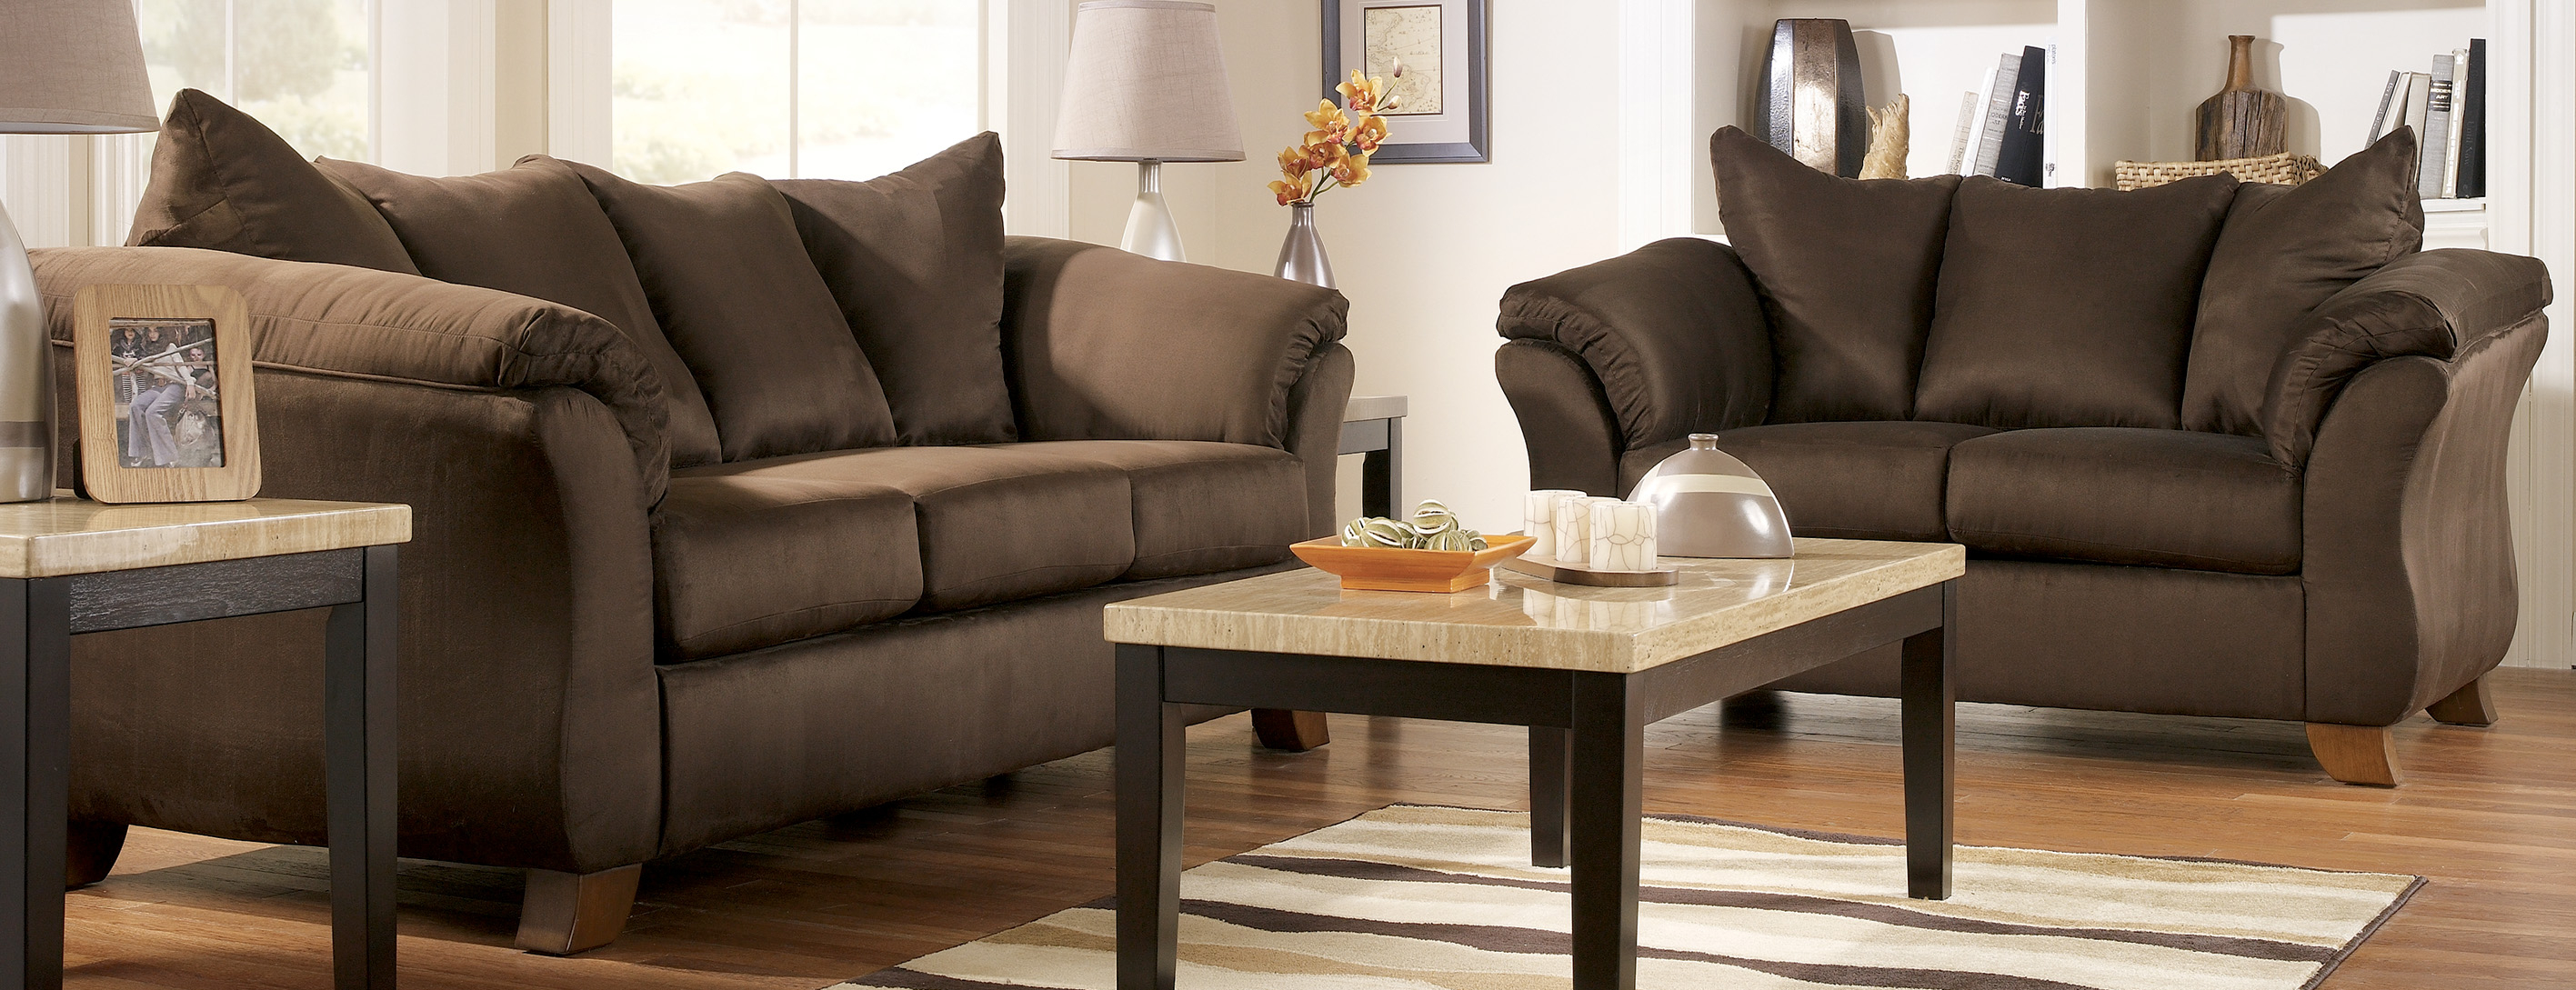 Cheap Living Room Sectionals Newsgr throughout 14 Awesome Ideas How to Craft Cheap Living Room Sets For Sale